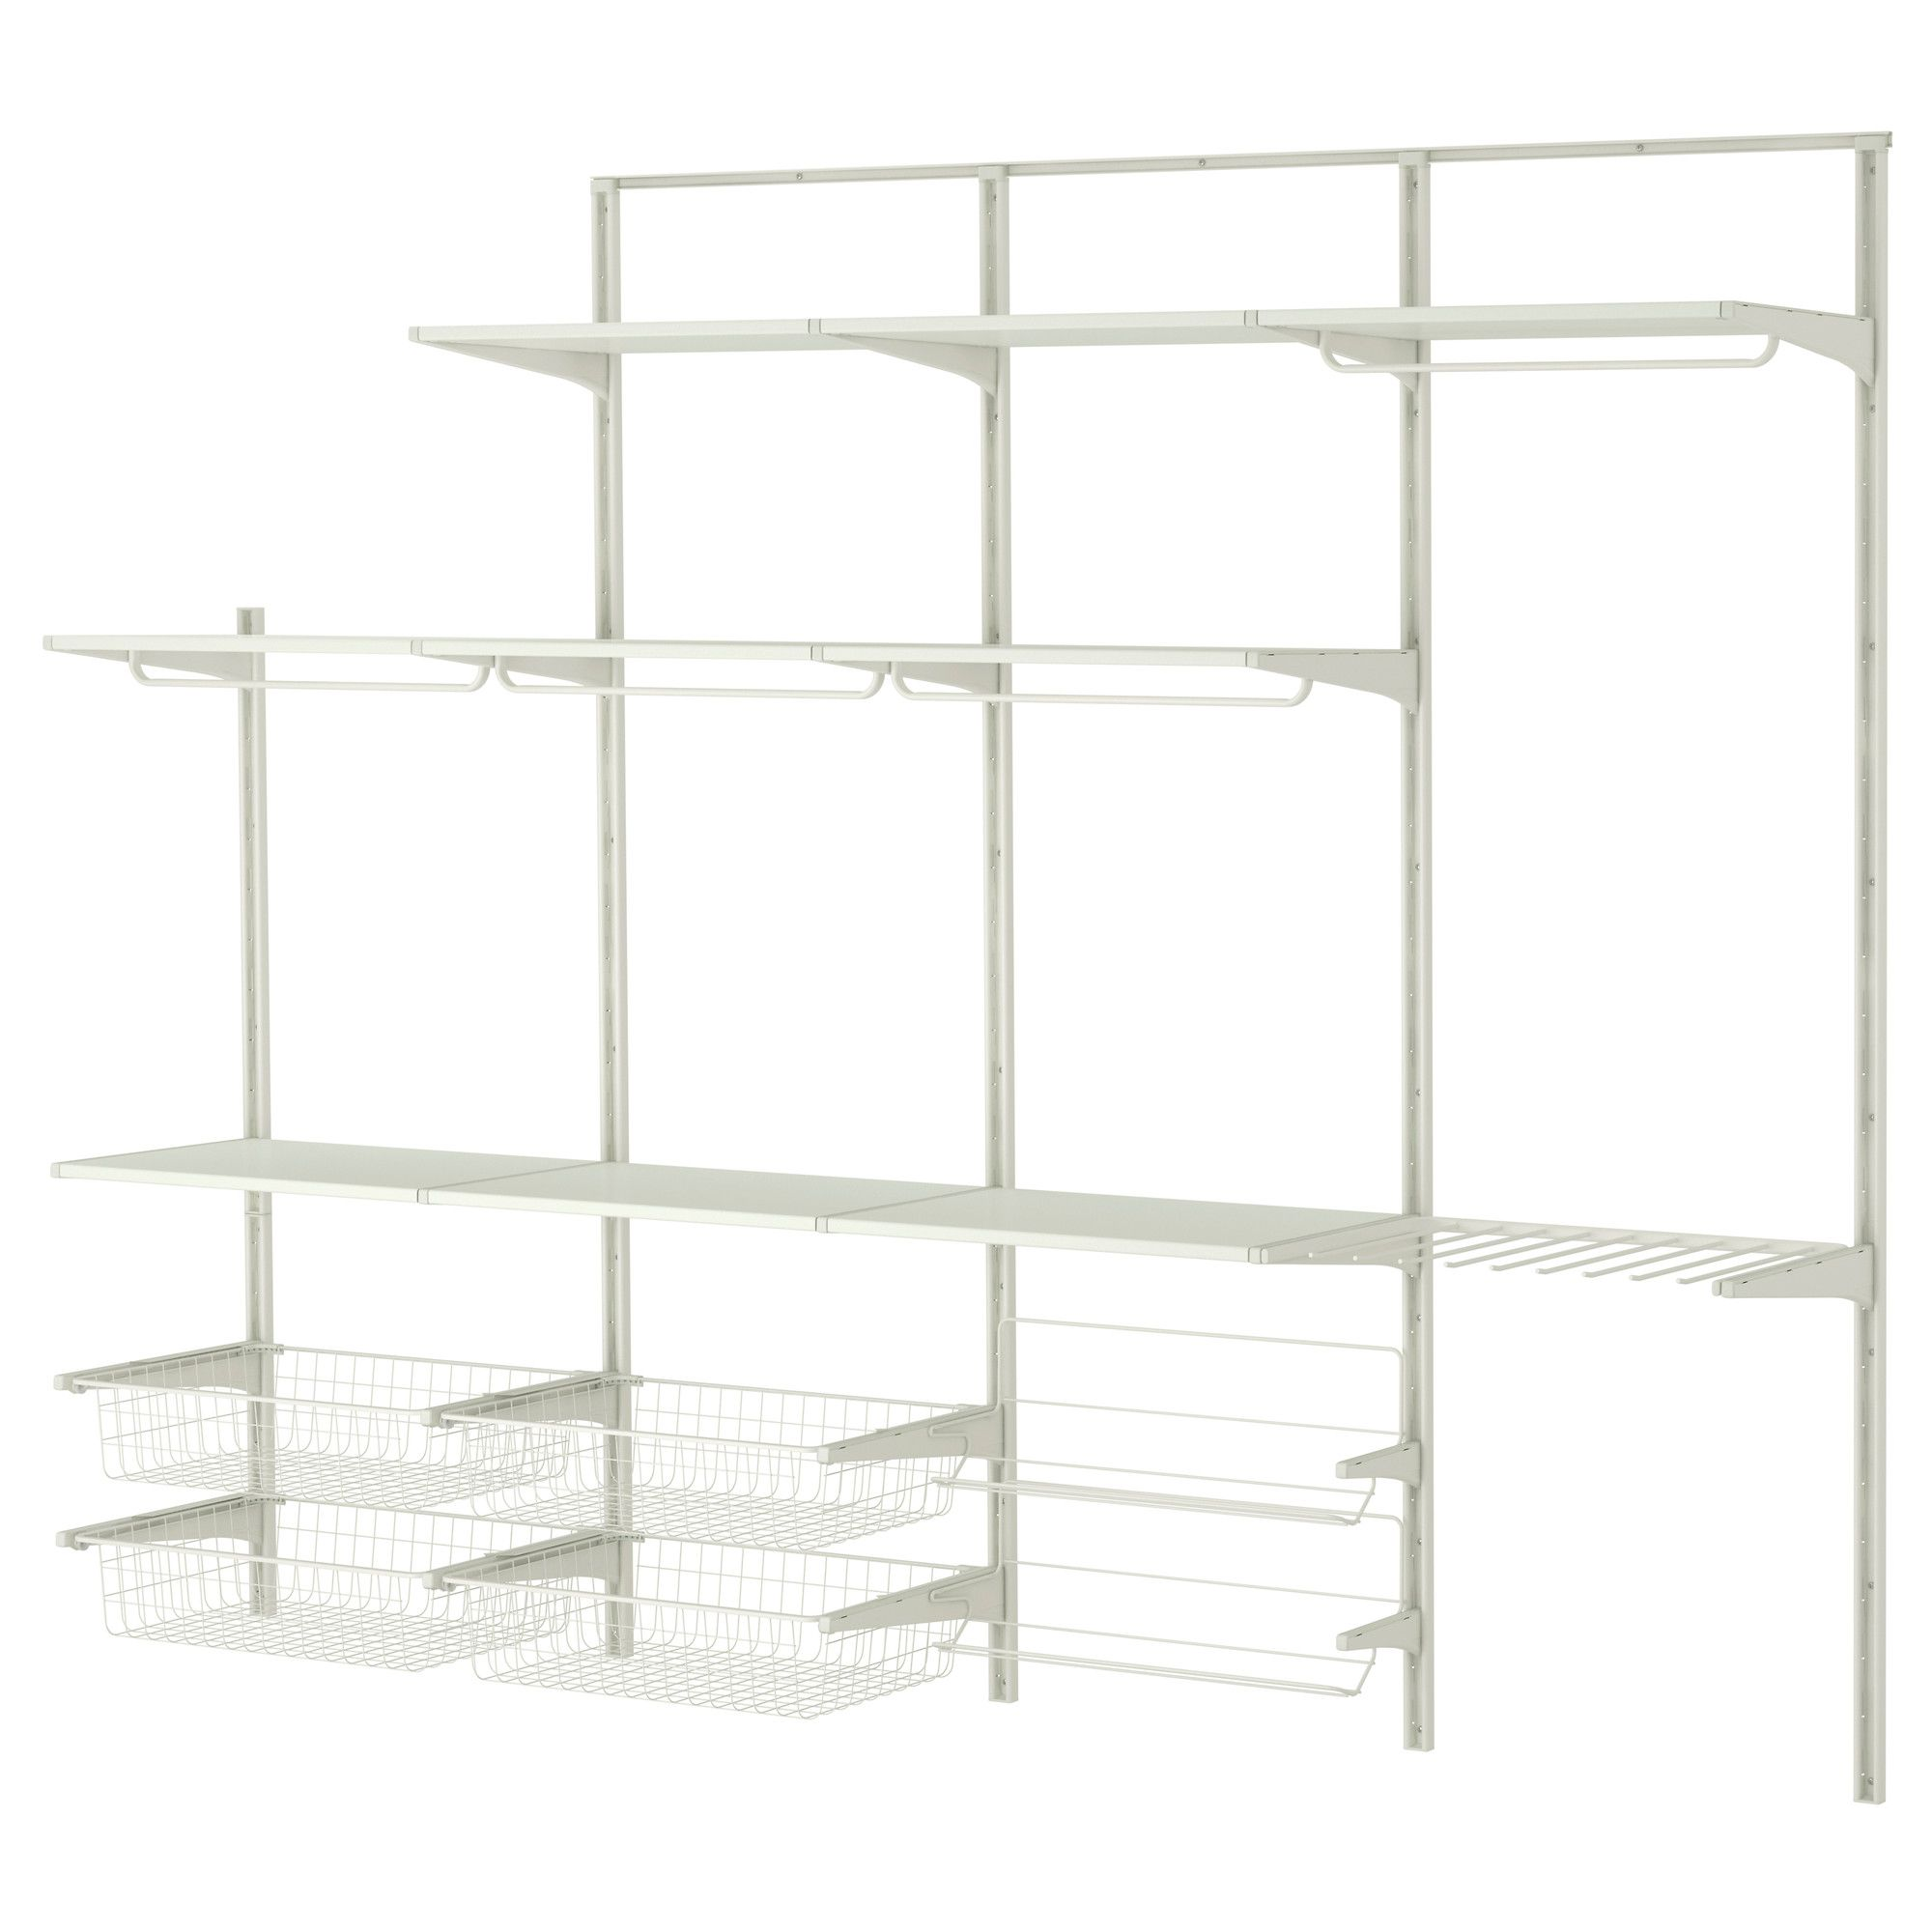 Ikea System Algot Wall Upright Rod Shoe Organizer Ikea Bedrooms